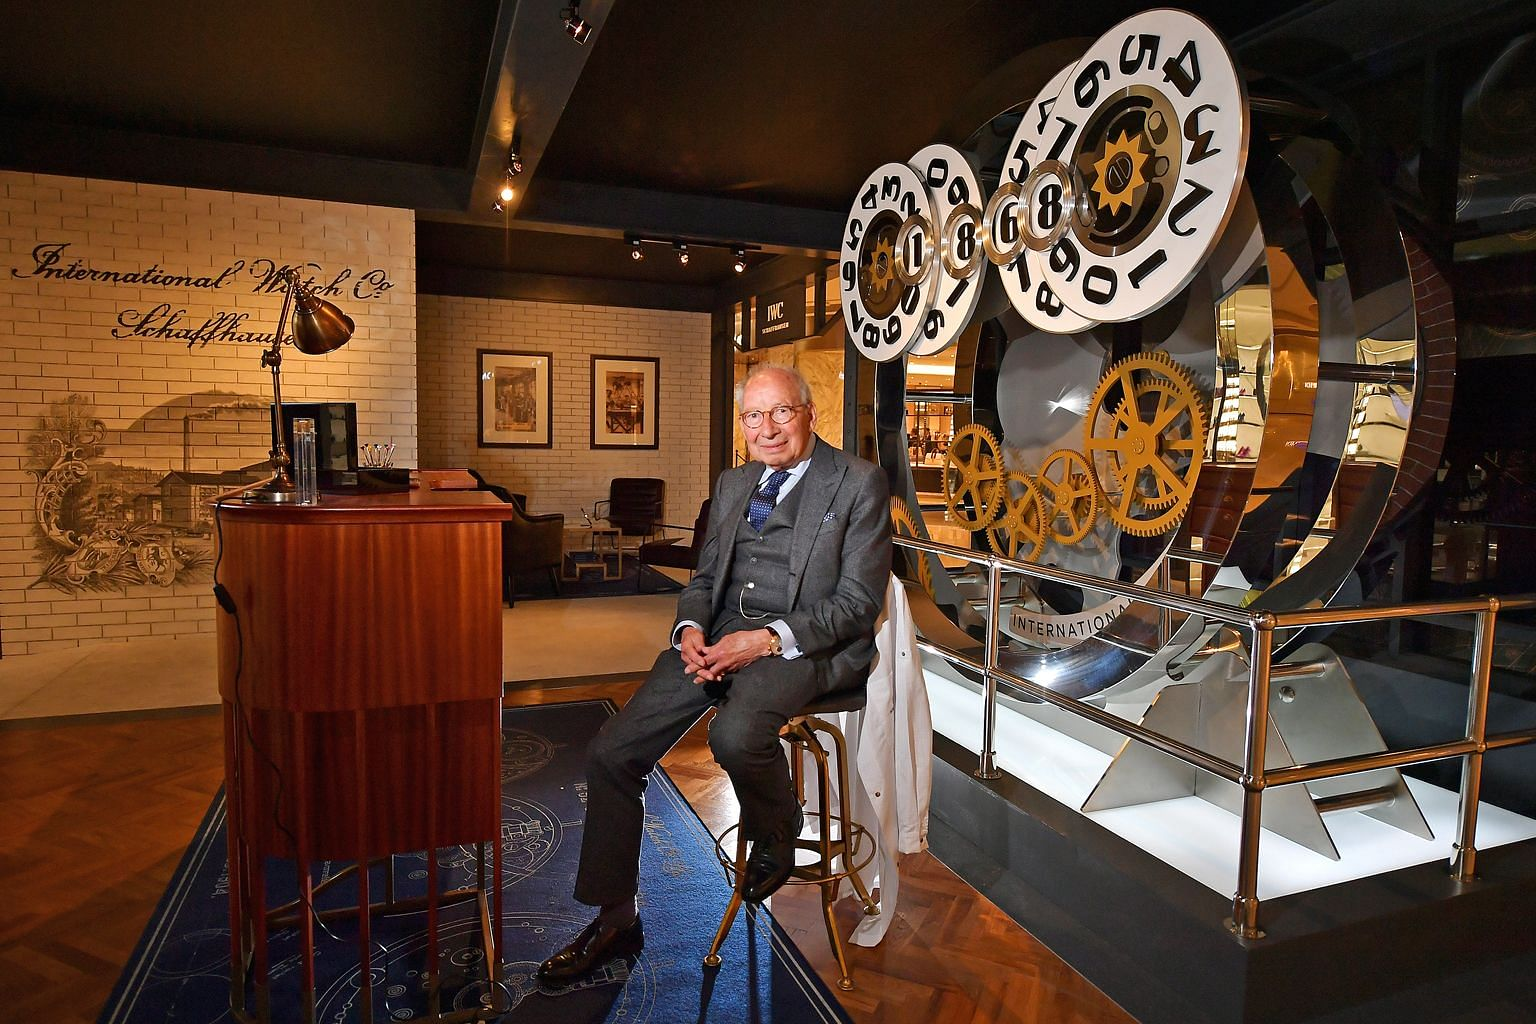 Mr Kurt Klaus made use of a lull in the watchmaking industry to work on a prototype of a complicated watch adding movements like a calendar system with a date and moon-phase indicator. The IWC Da Vinci Perpetual Calendar Chronograph was invented by M